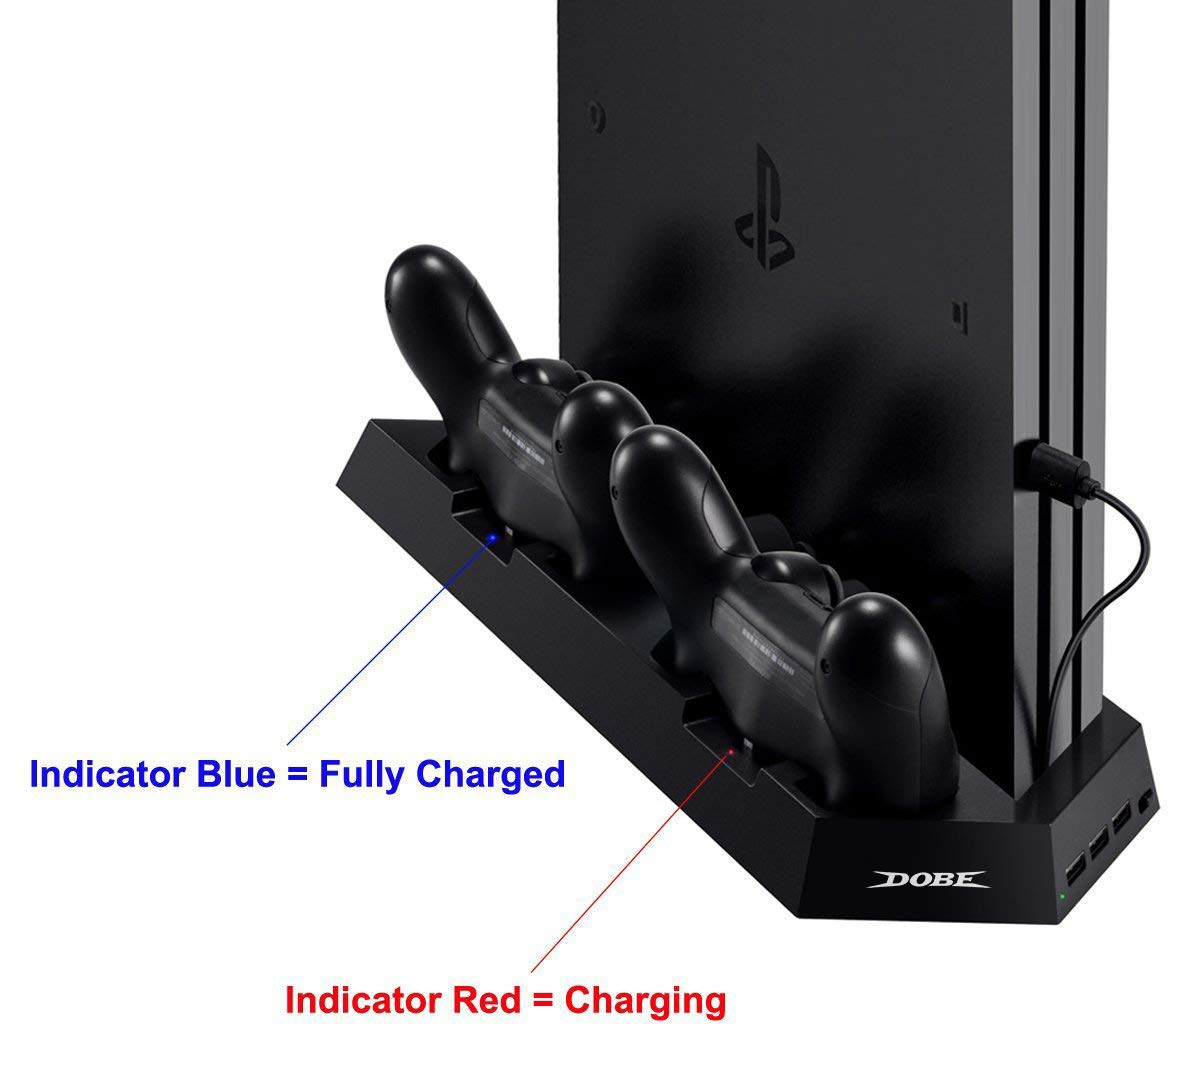 PS4 Universal Controller Charger KINGTOP PS4/PS4 Pro/PS4 Slim Fan Cooler Vertical Stand Dual Charging Station with Warranty] by KINGTOP